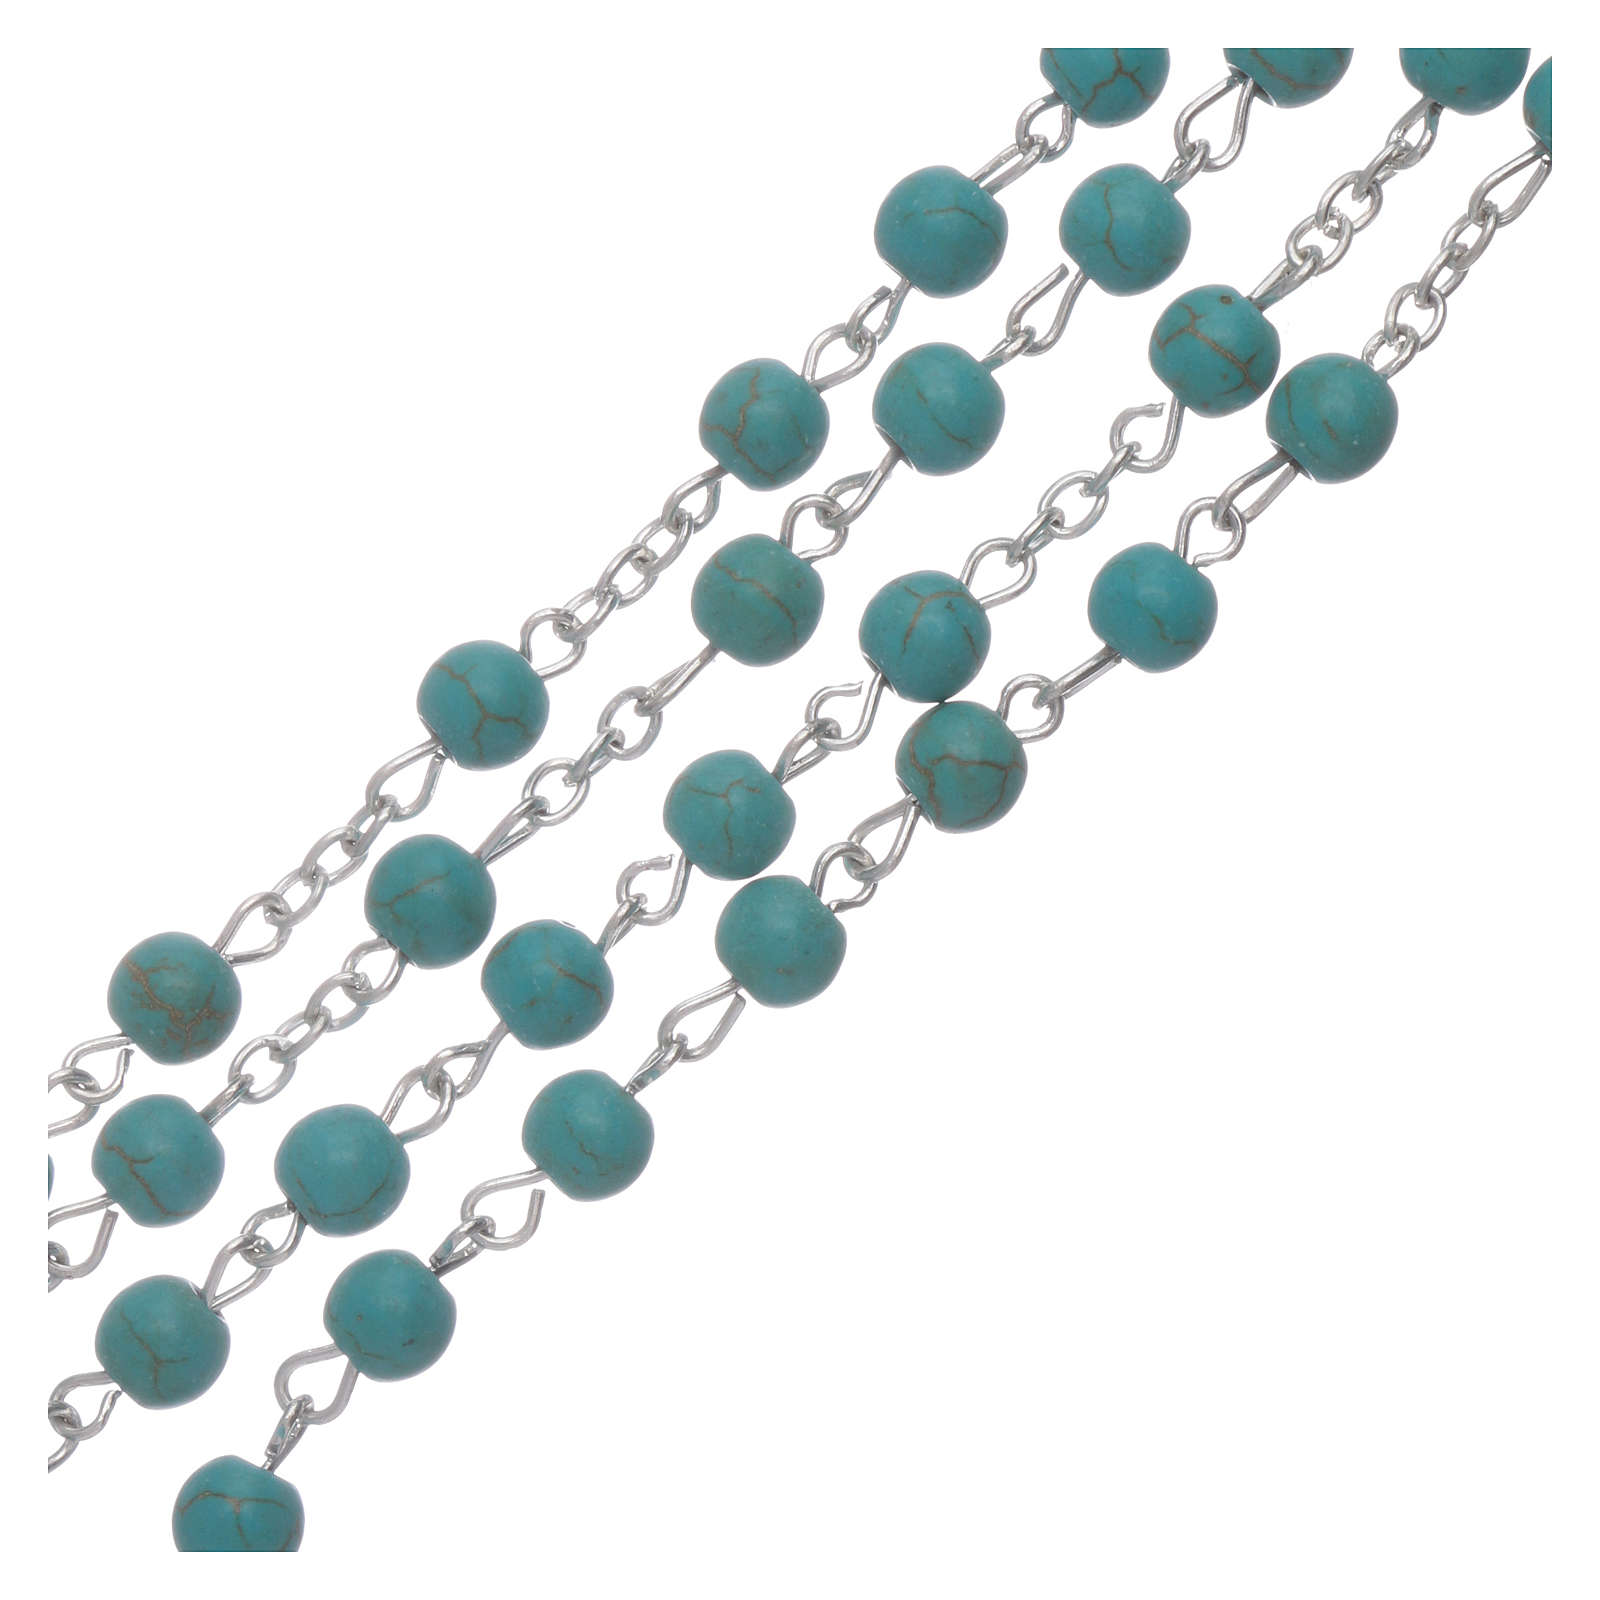 Rosary beads in turquoise glass, 6mm 4